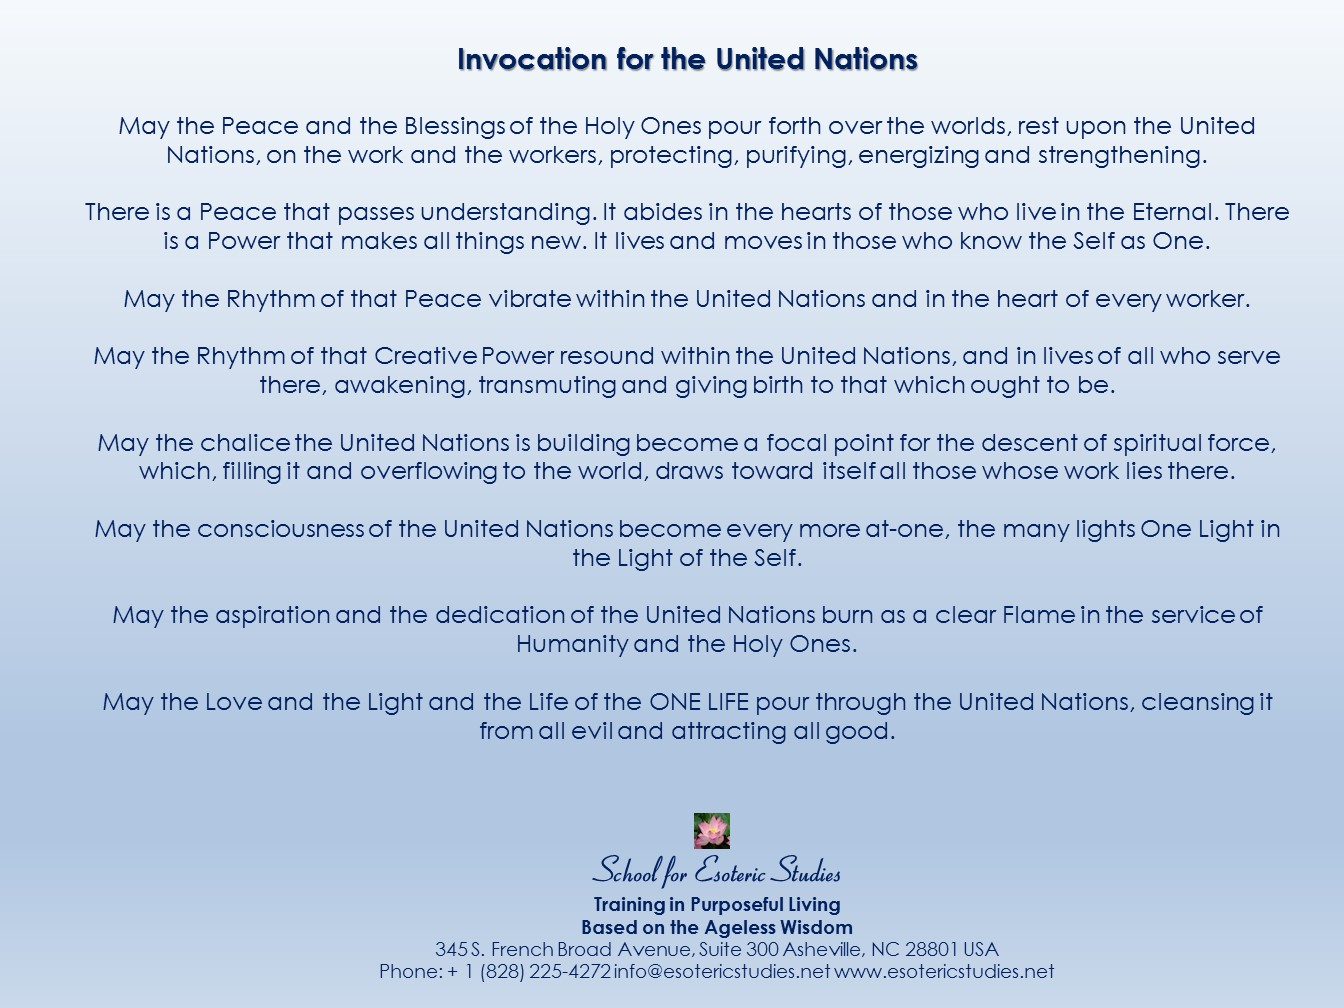 Quote about the United Nations